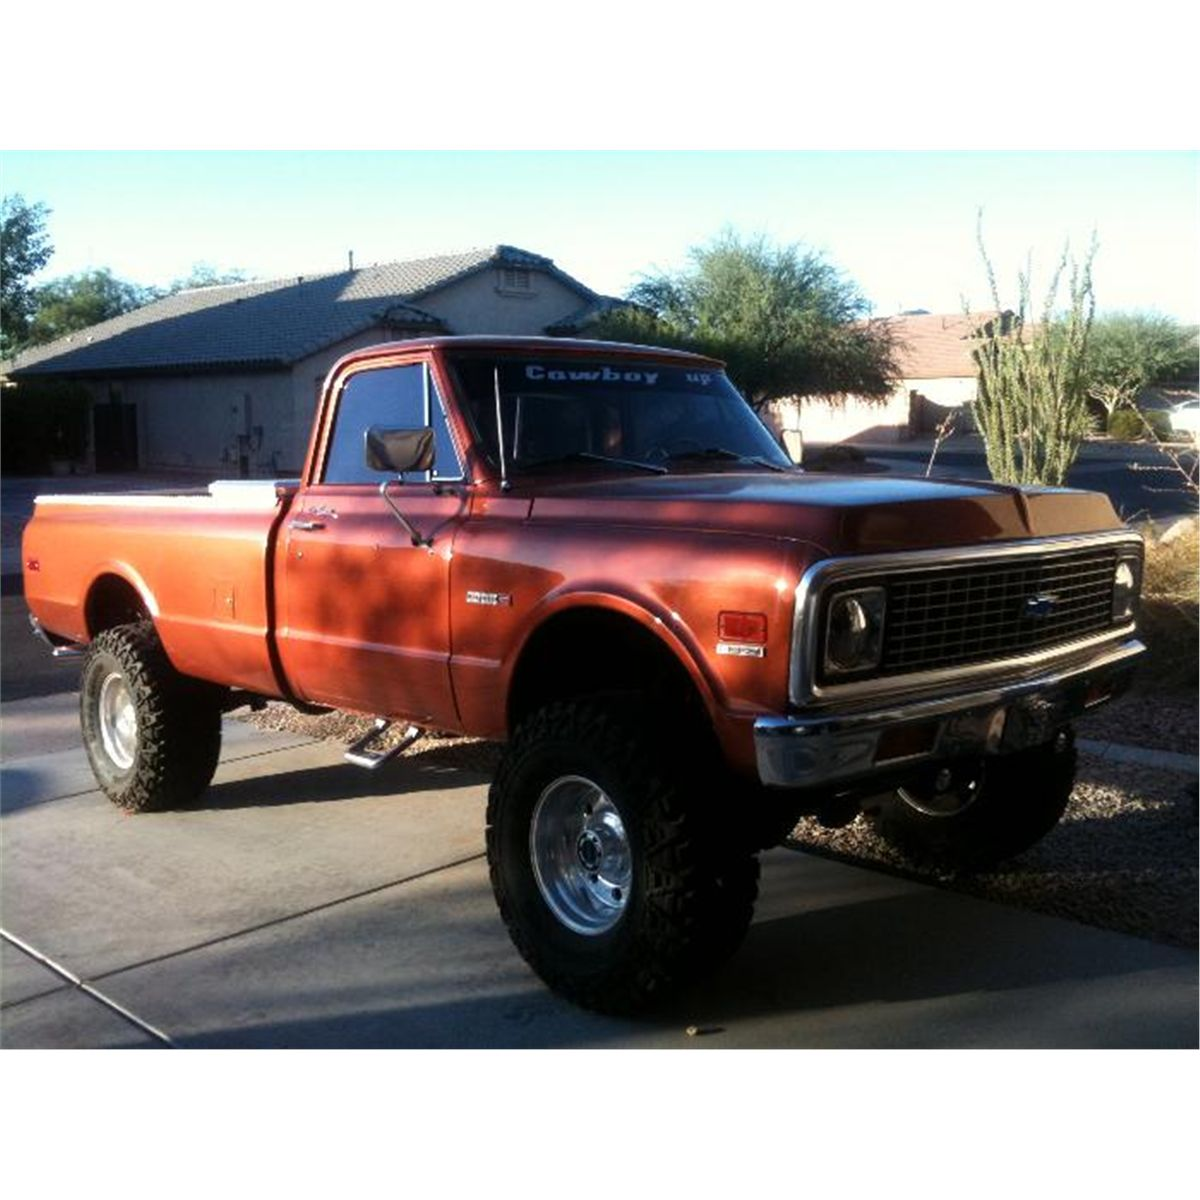 1972 4x4 chevy truck for sale autos weblog. Black Bedroom Furniture Sets. Home Design Ideas